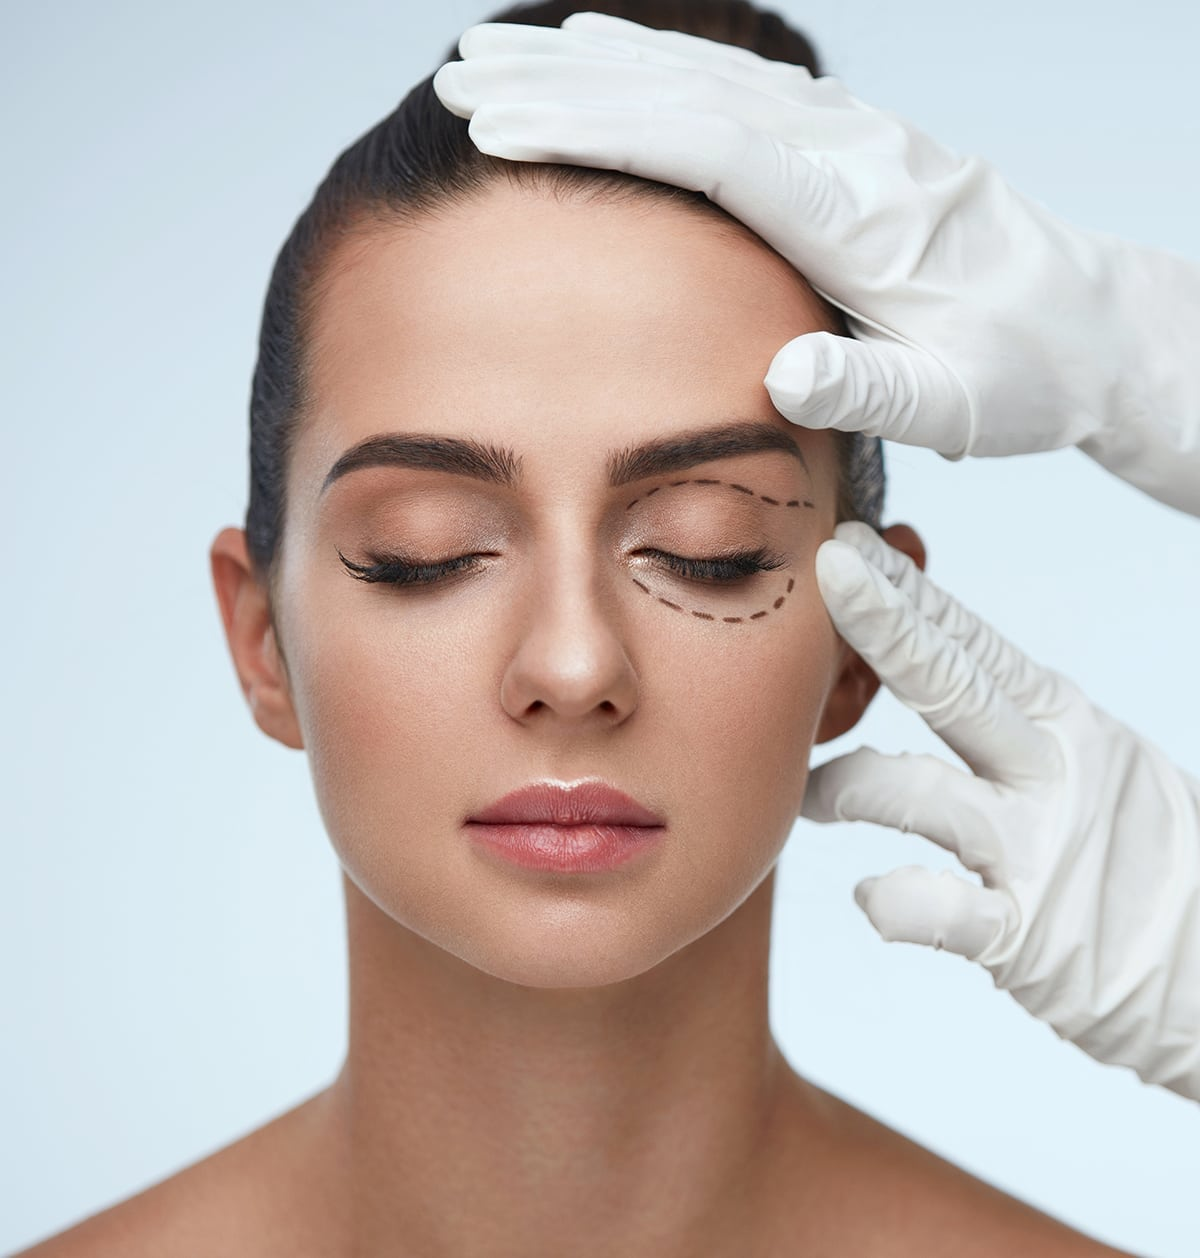 New York Blepharoplasty